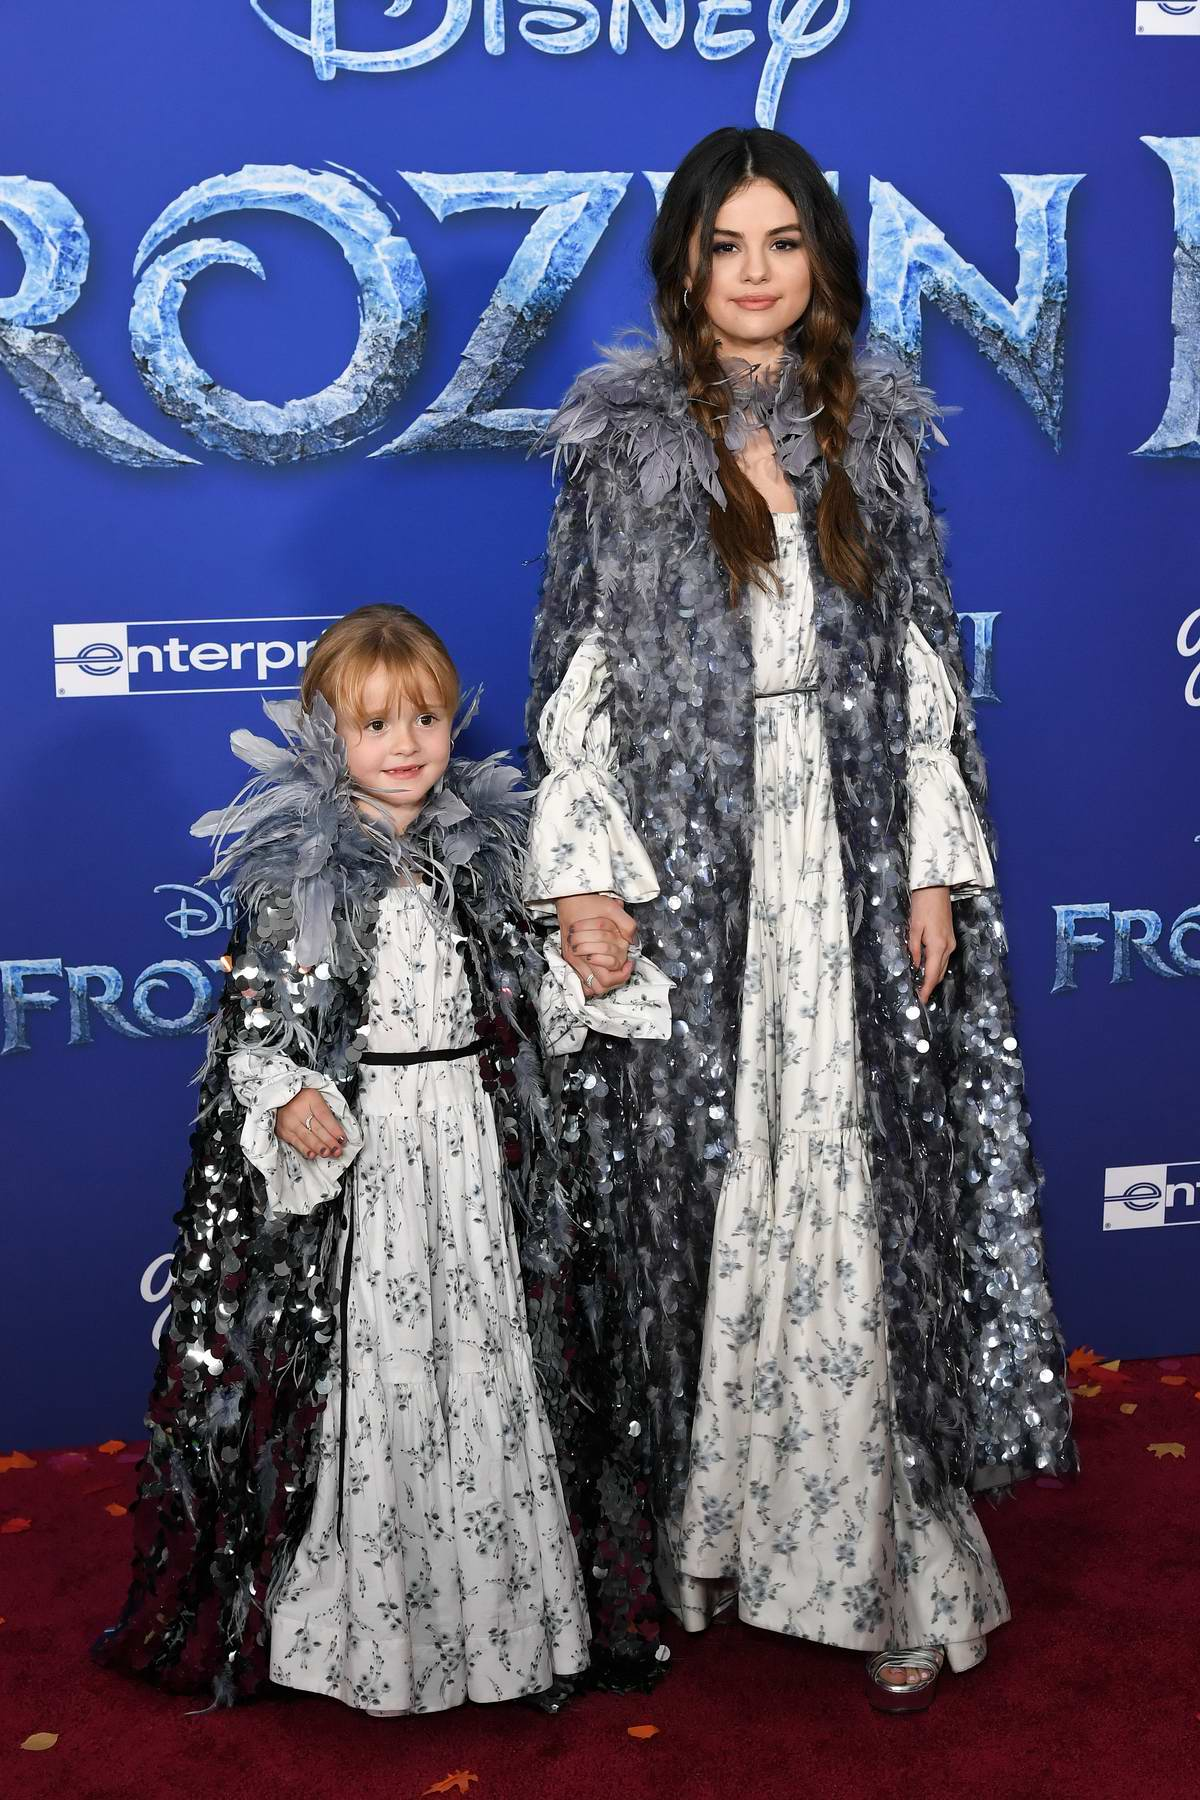 Selena Gomez attends the Premiere of Disney's 'Frozen 2' at Dolby Theatre in Hollywood, California